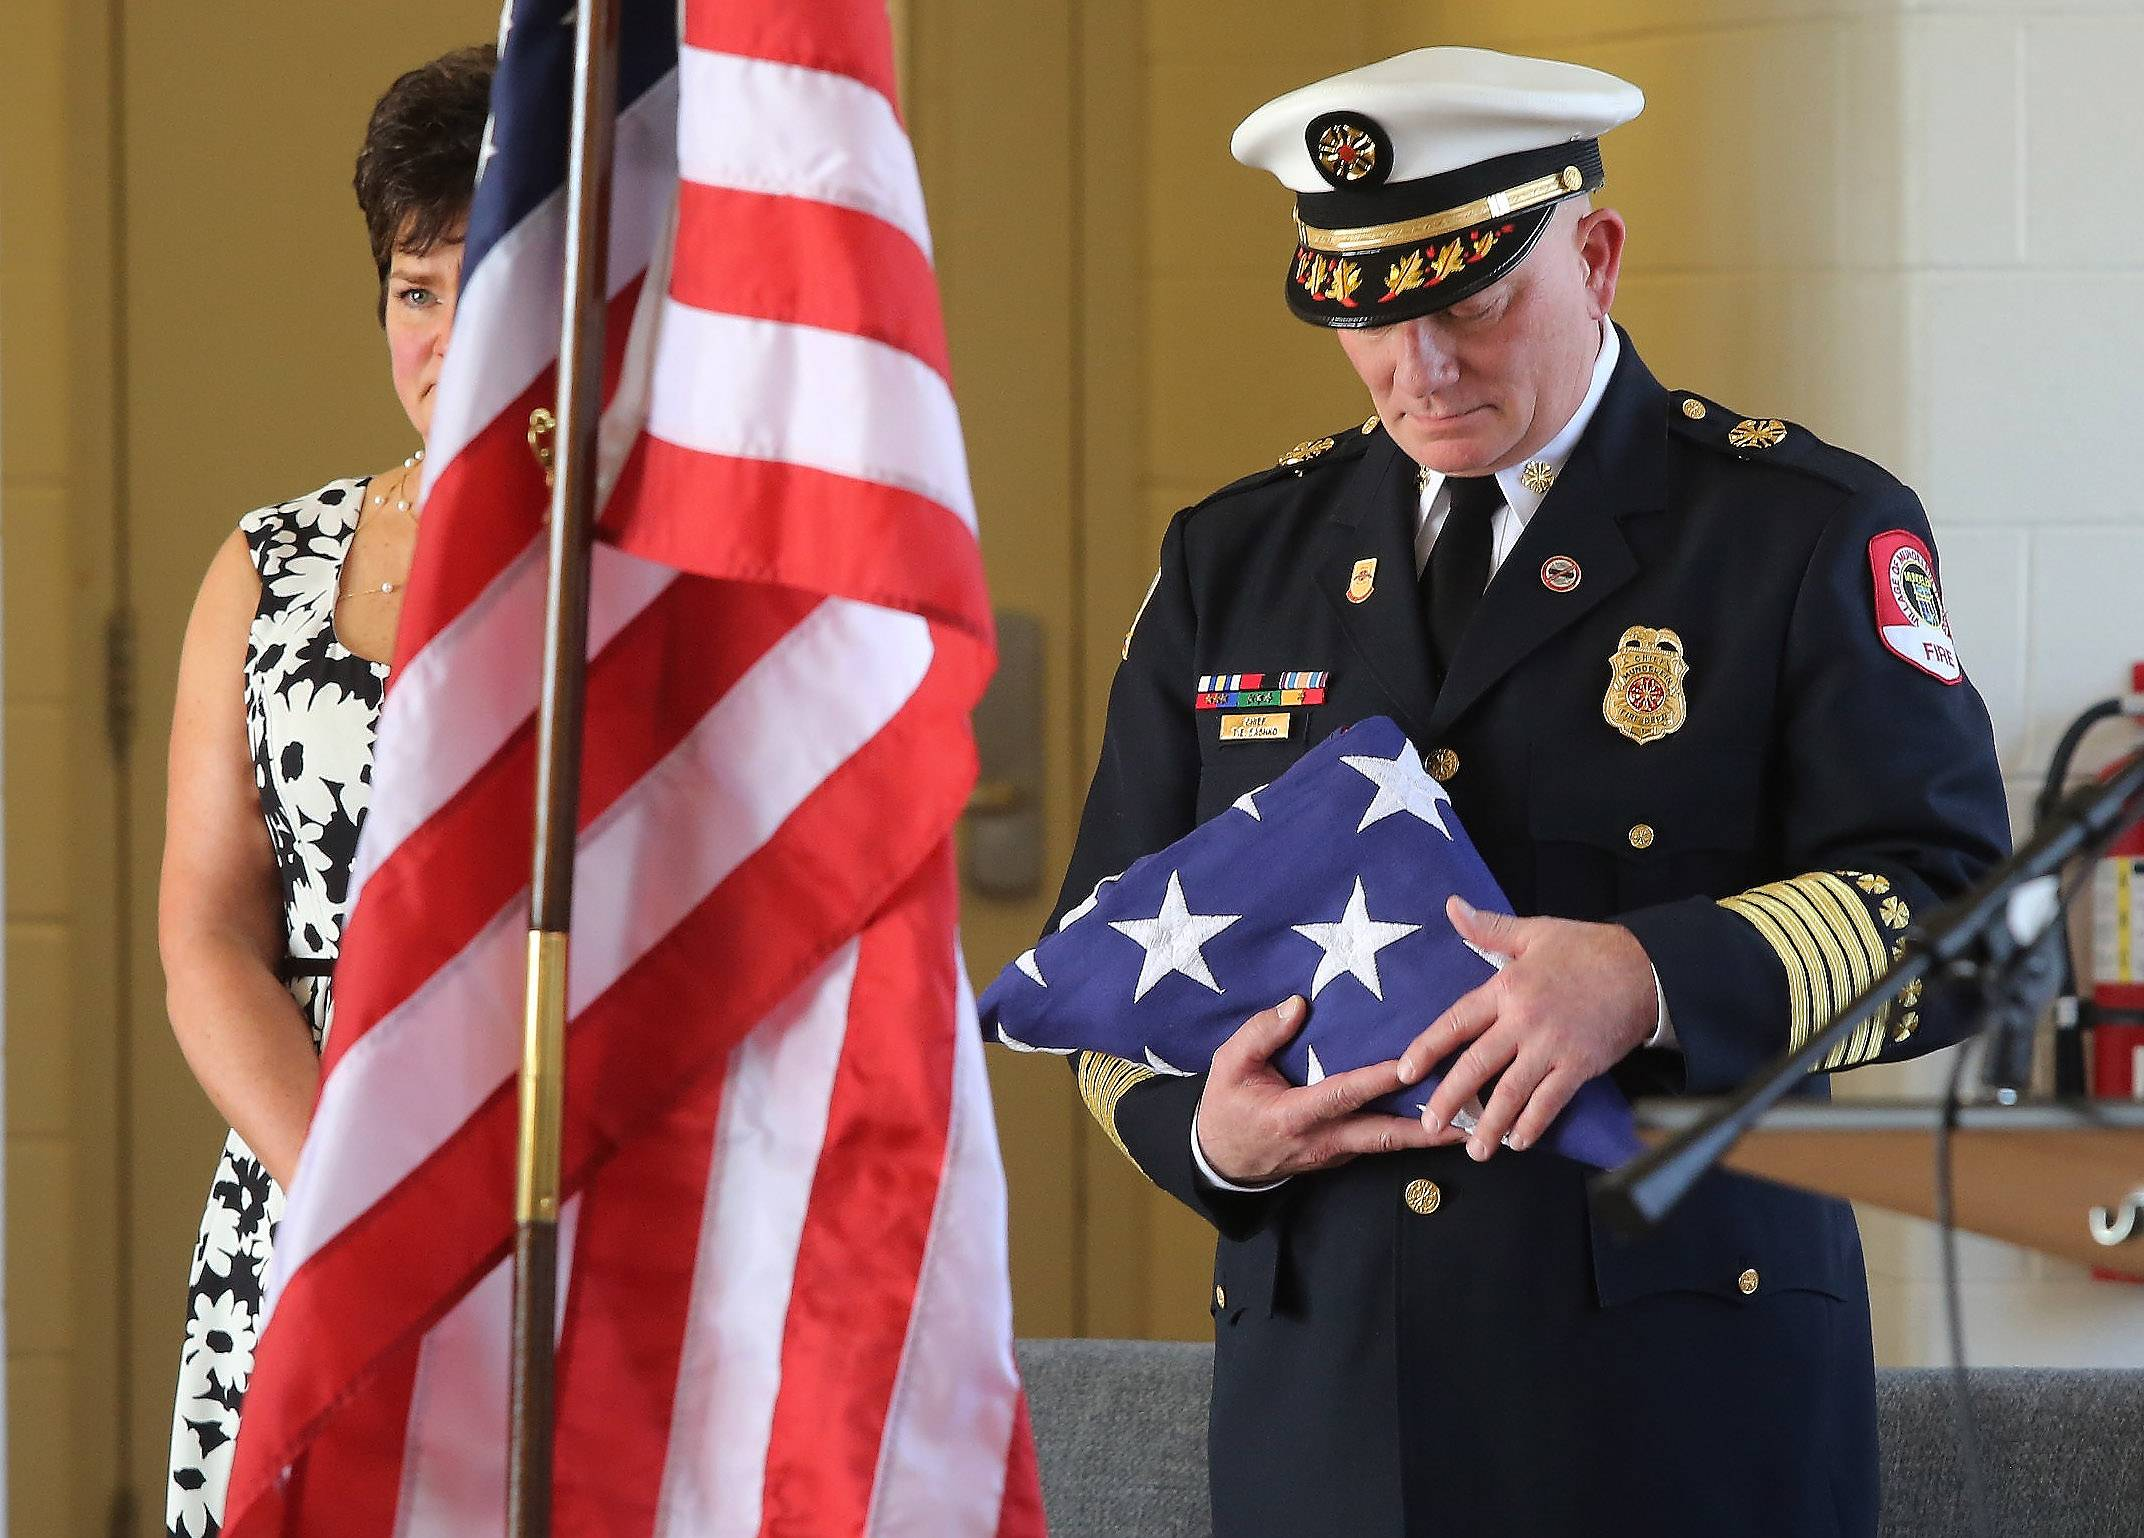 Mundelein fire chief honored with walkout ceremony